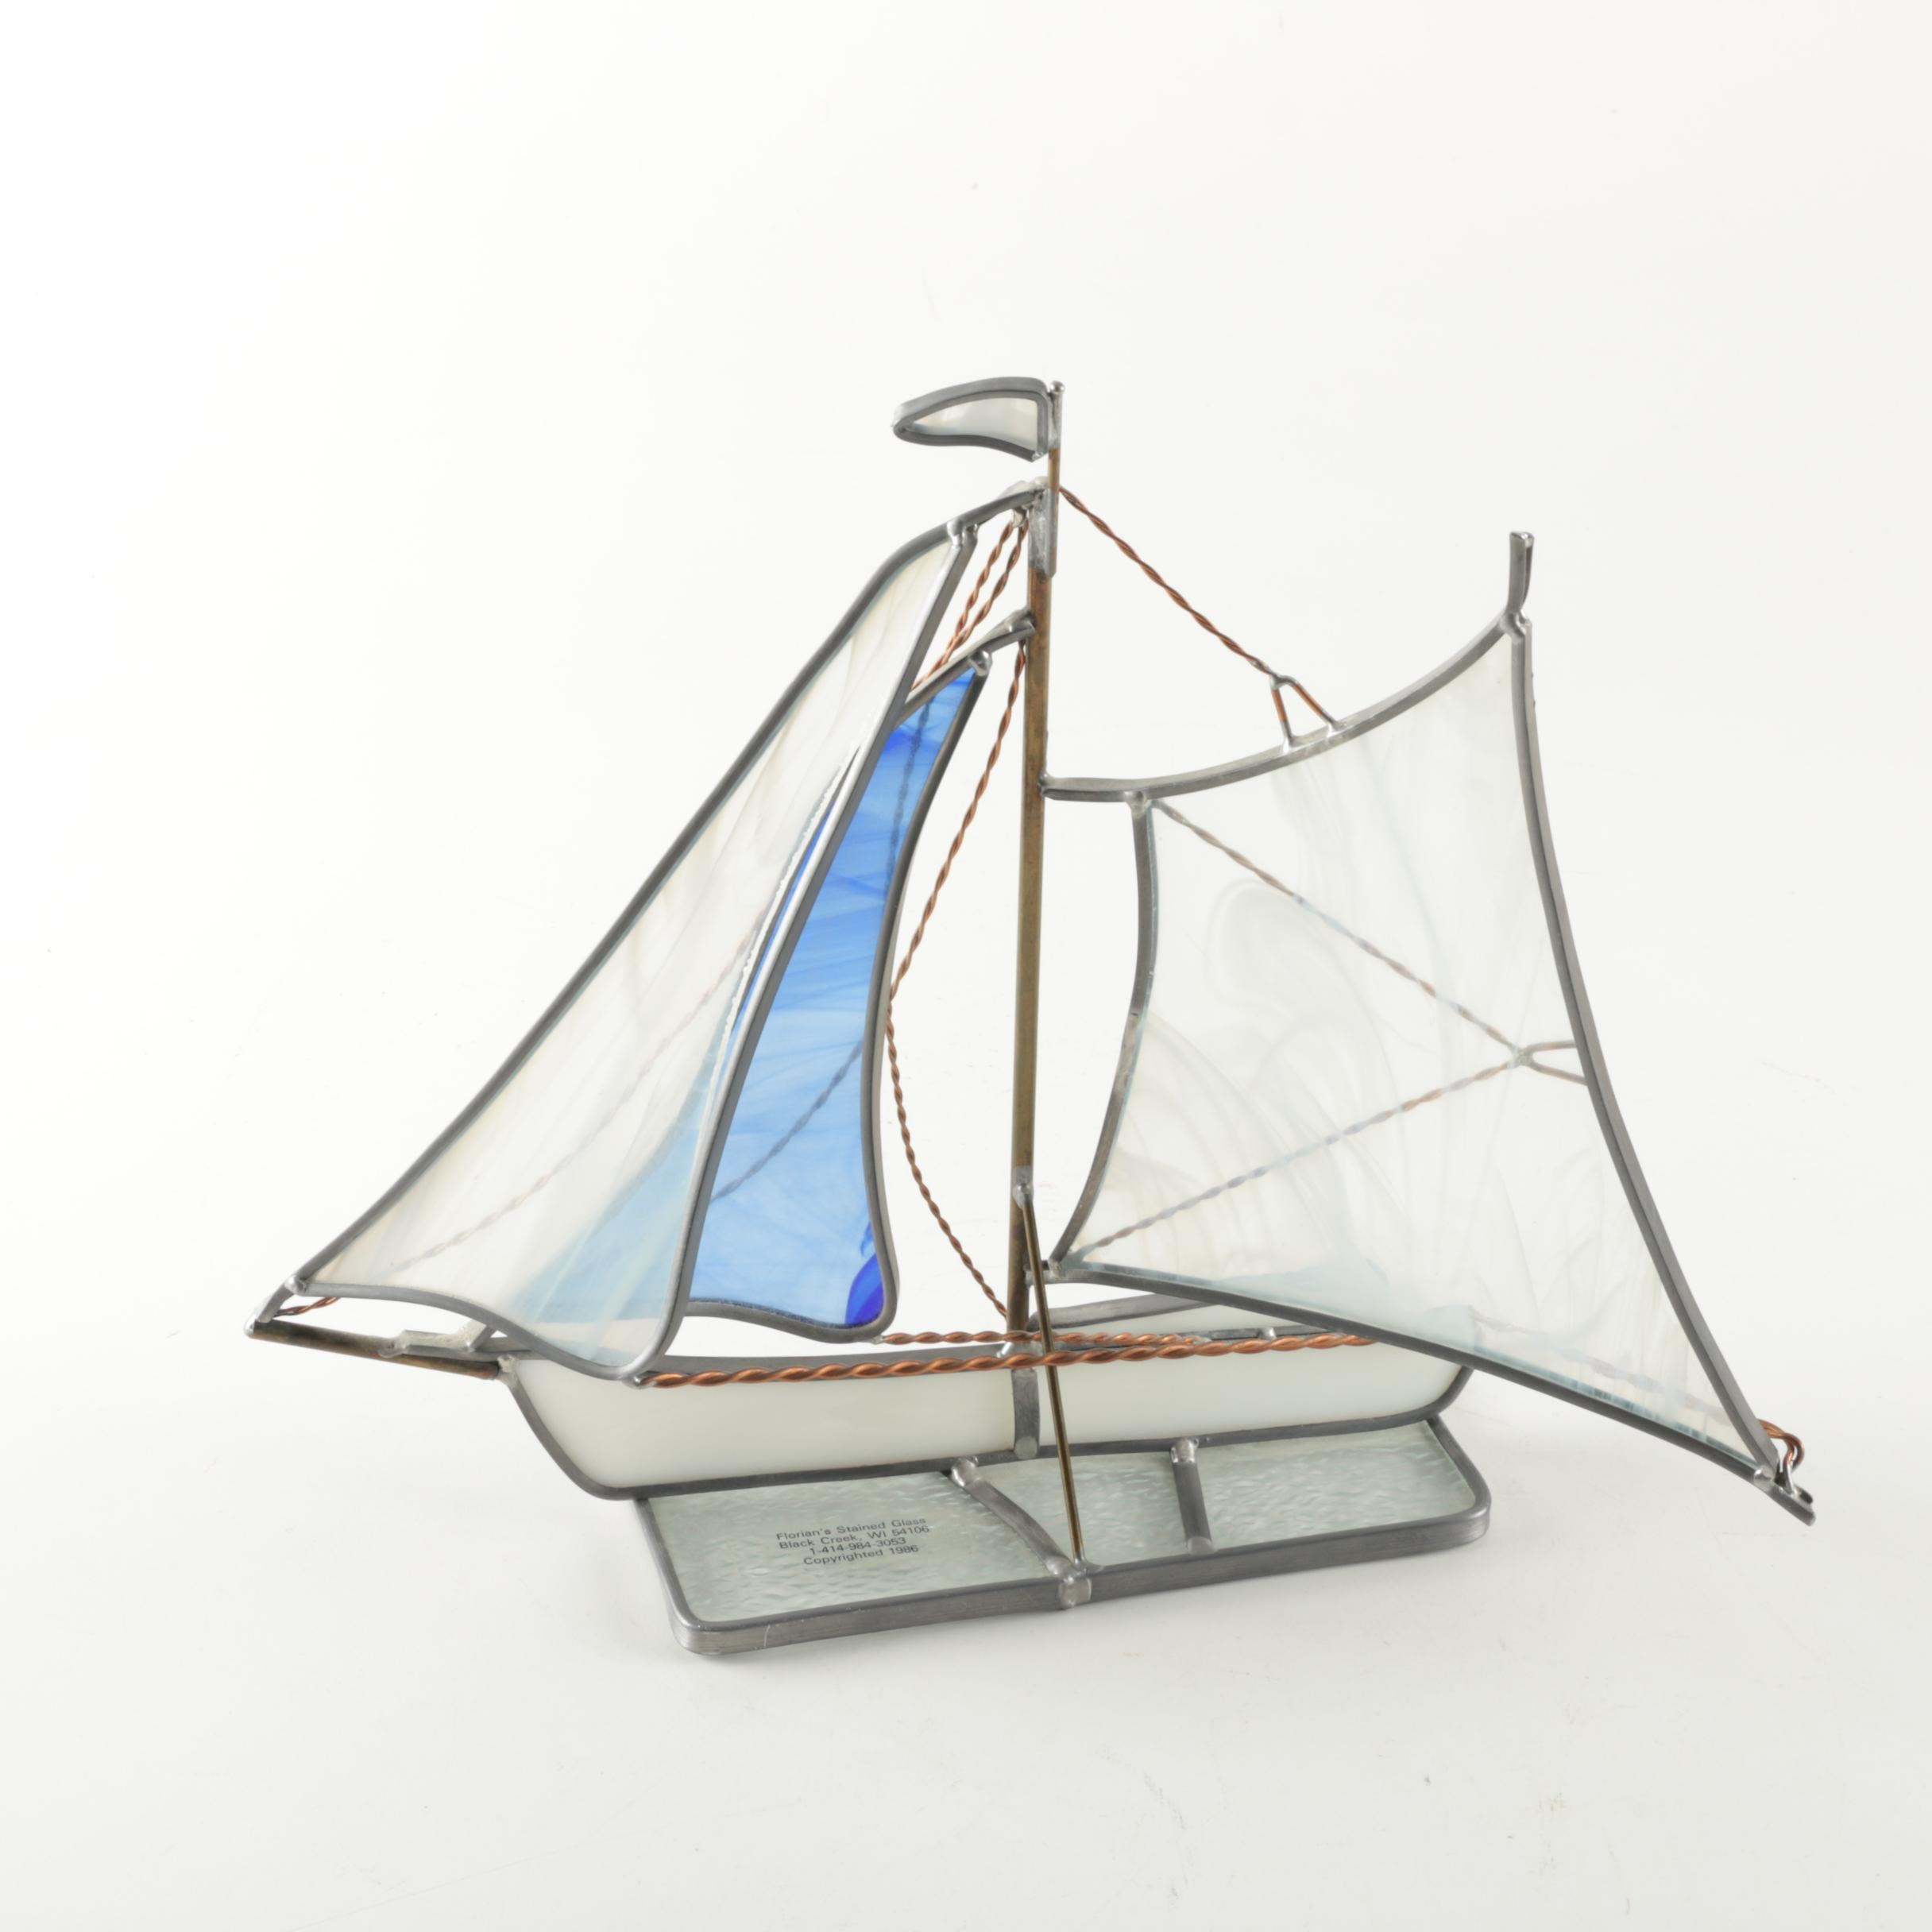 Florian's Stained Glass Sculpture of Sailboat